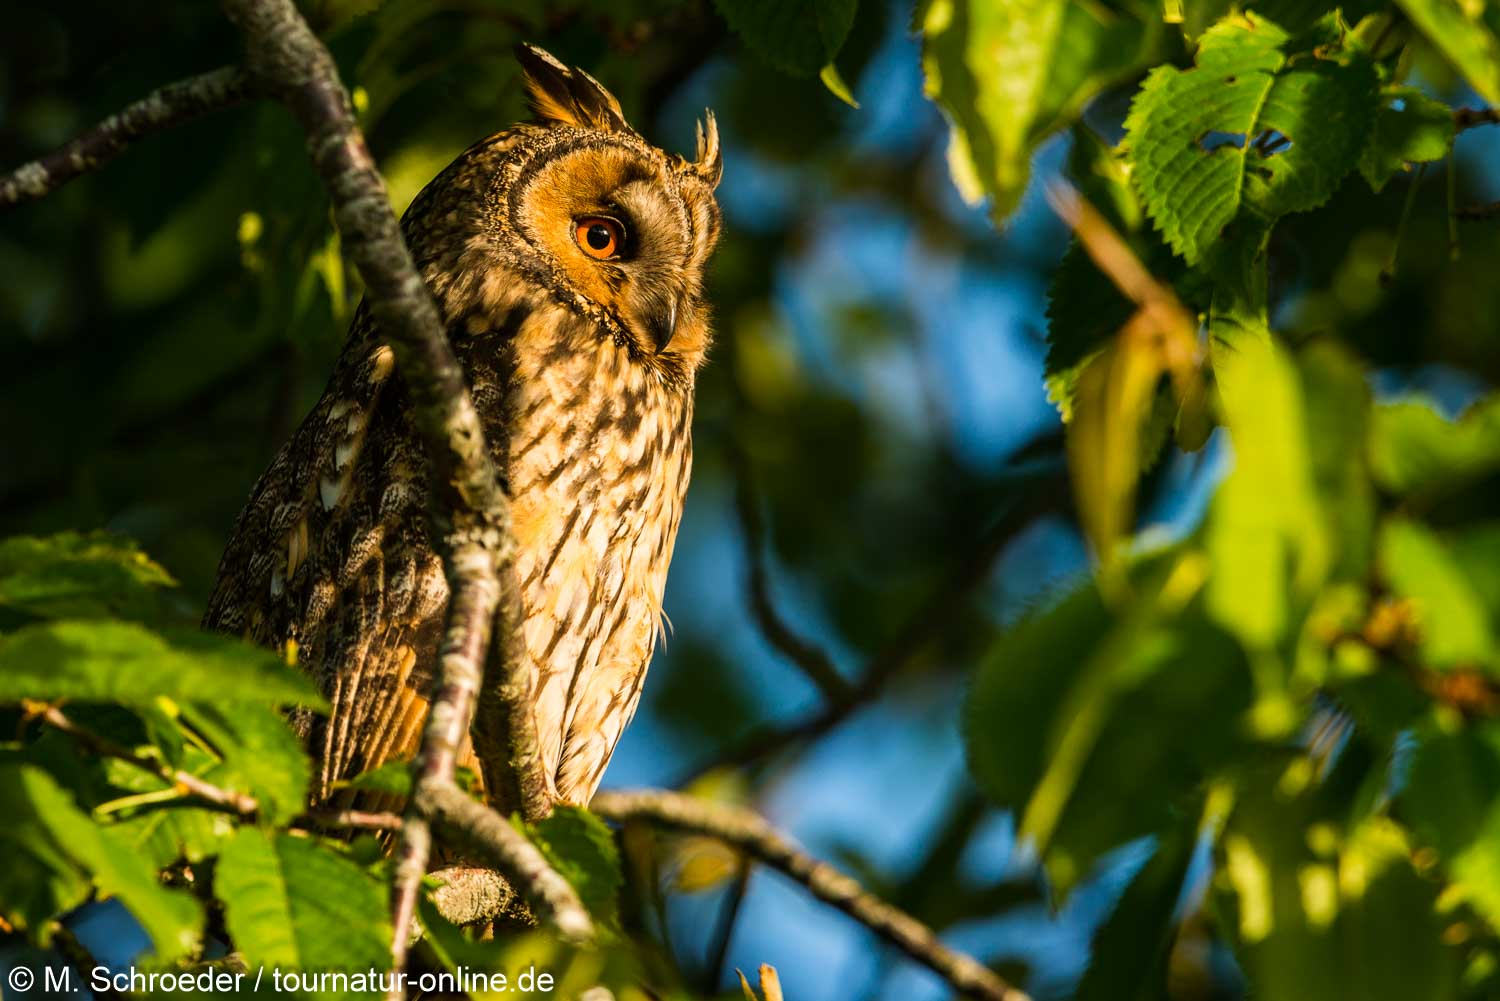 long-eared owl (Asio otus